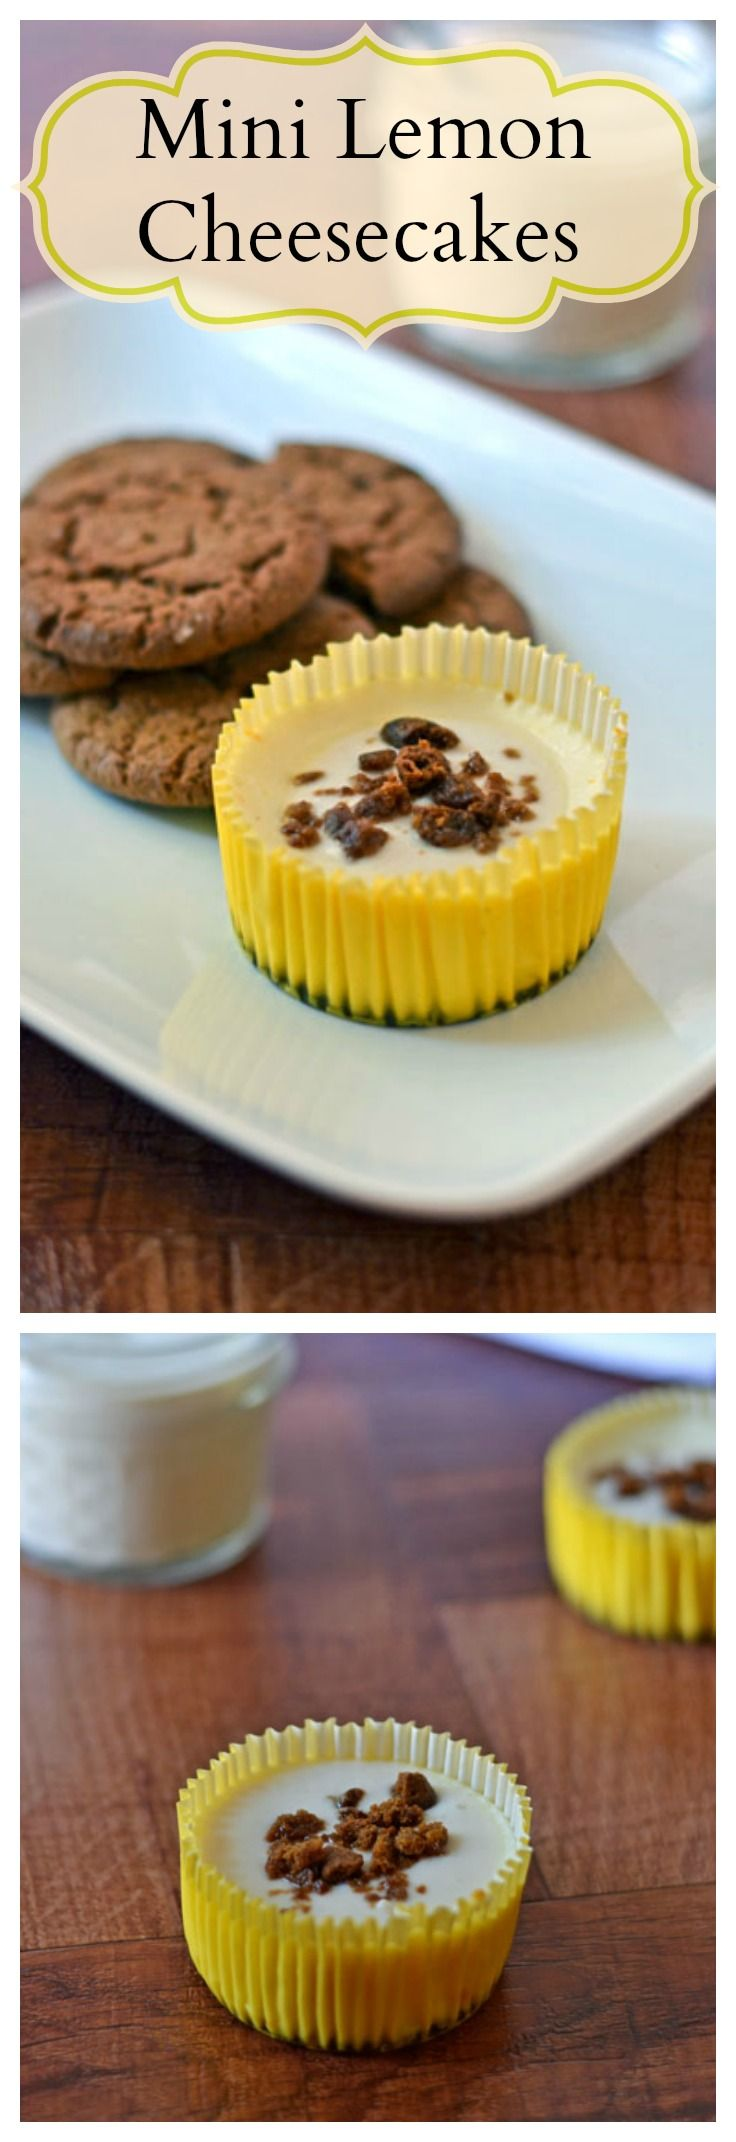 Mini Lemon Cheesecakes with Gingersnap Crust from Well Plated by Erin